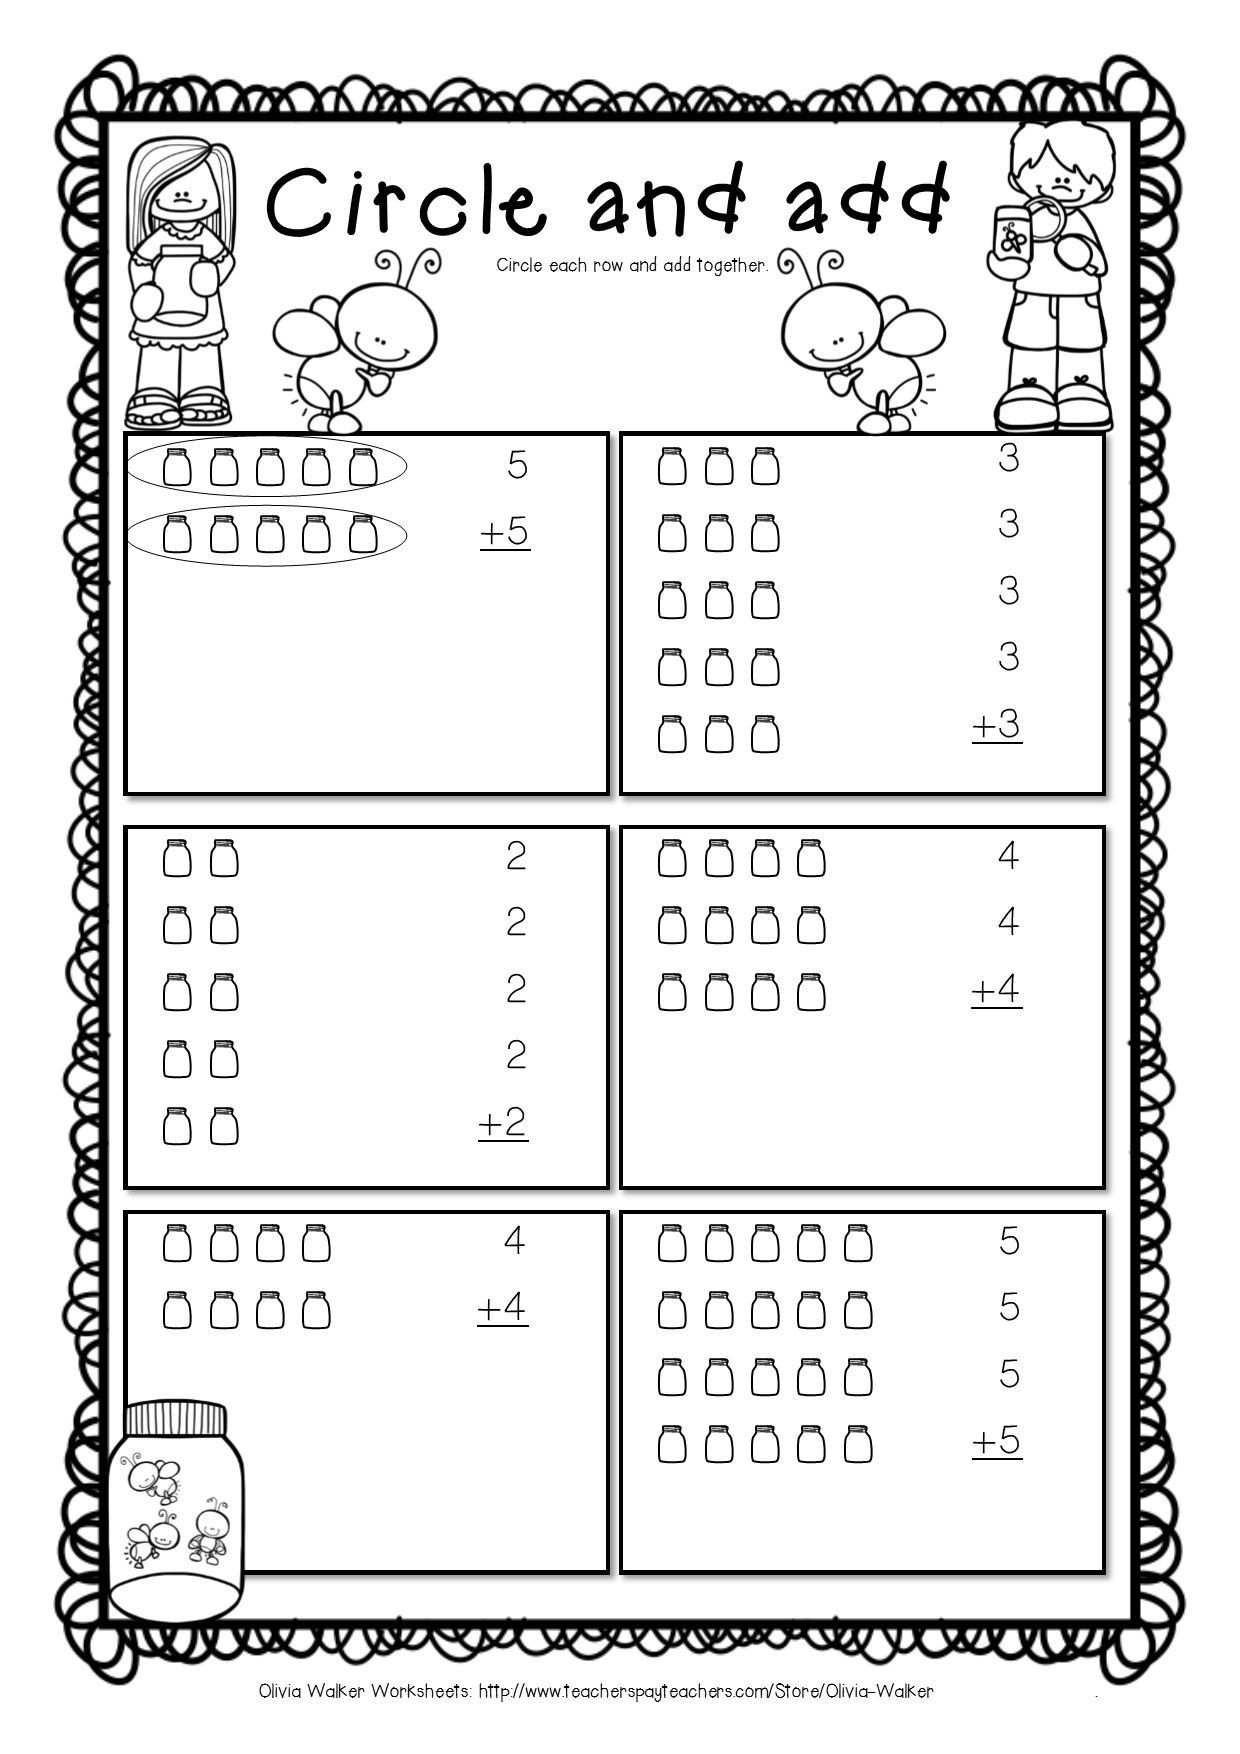 Array Worksheets for 2nd Graders Arrays Worksheets Grade Two Math Standard First